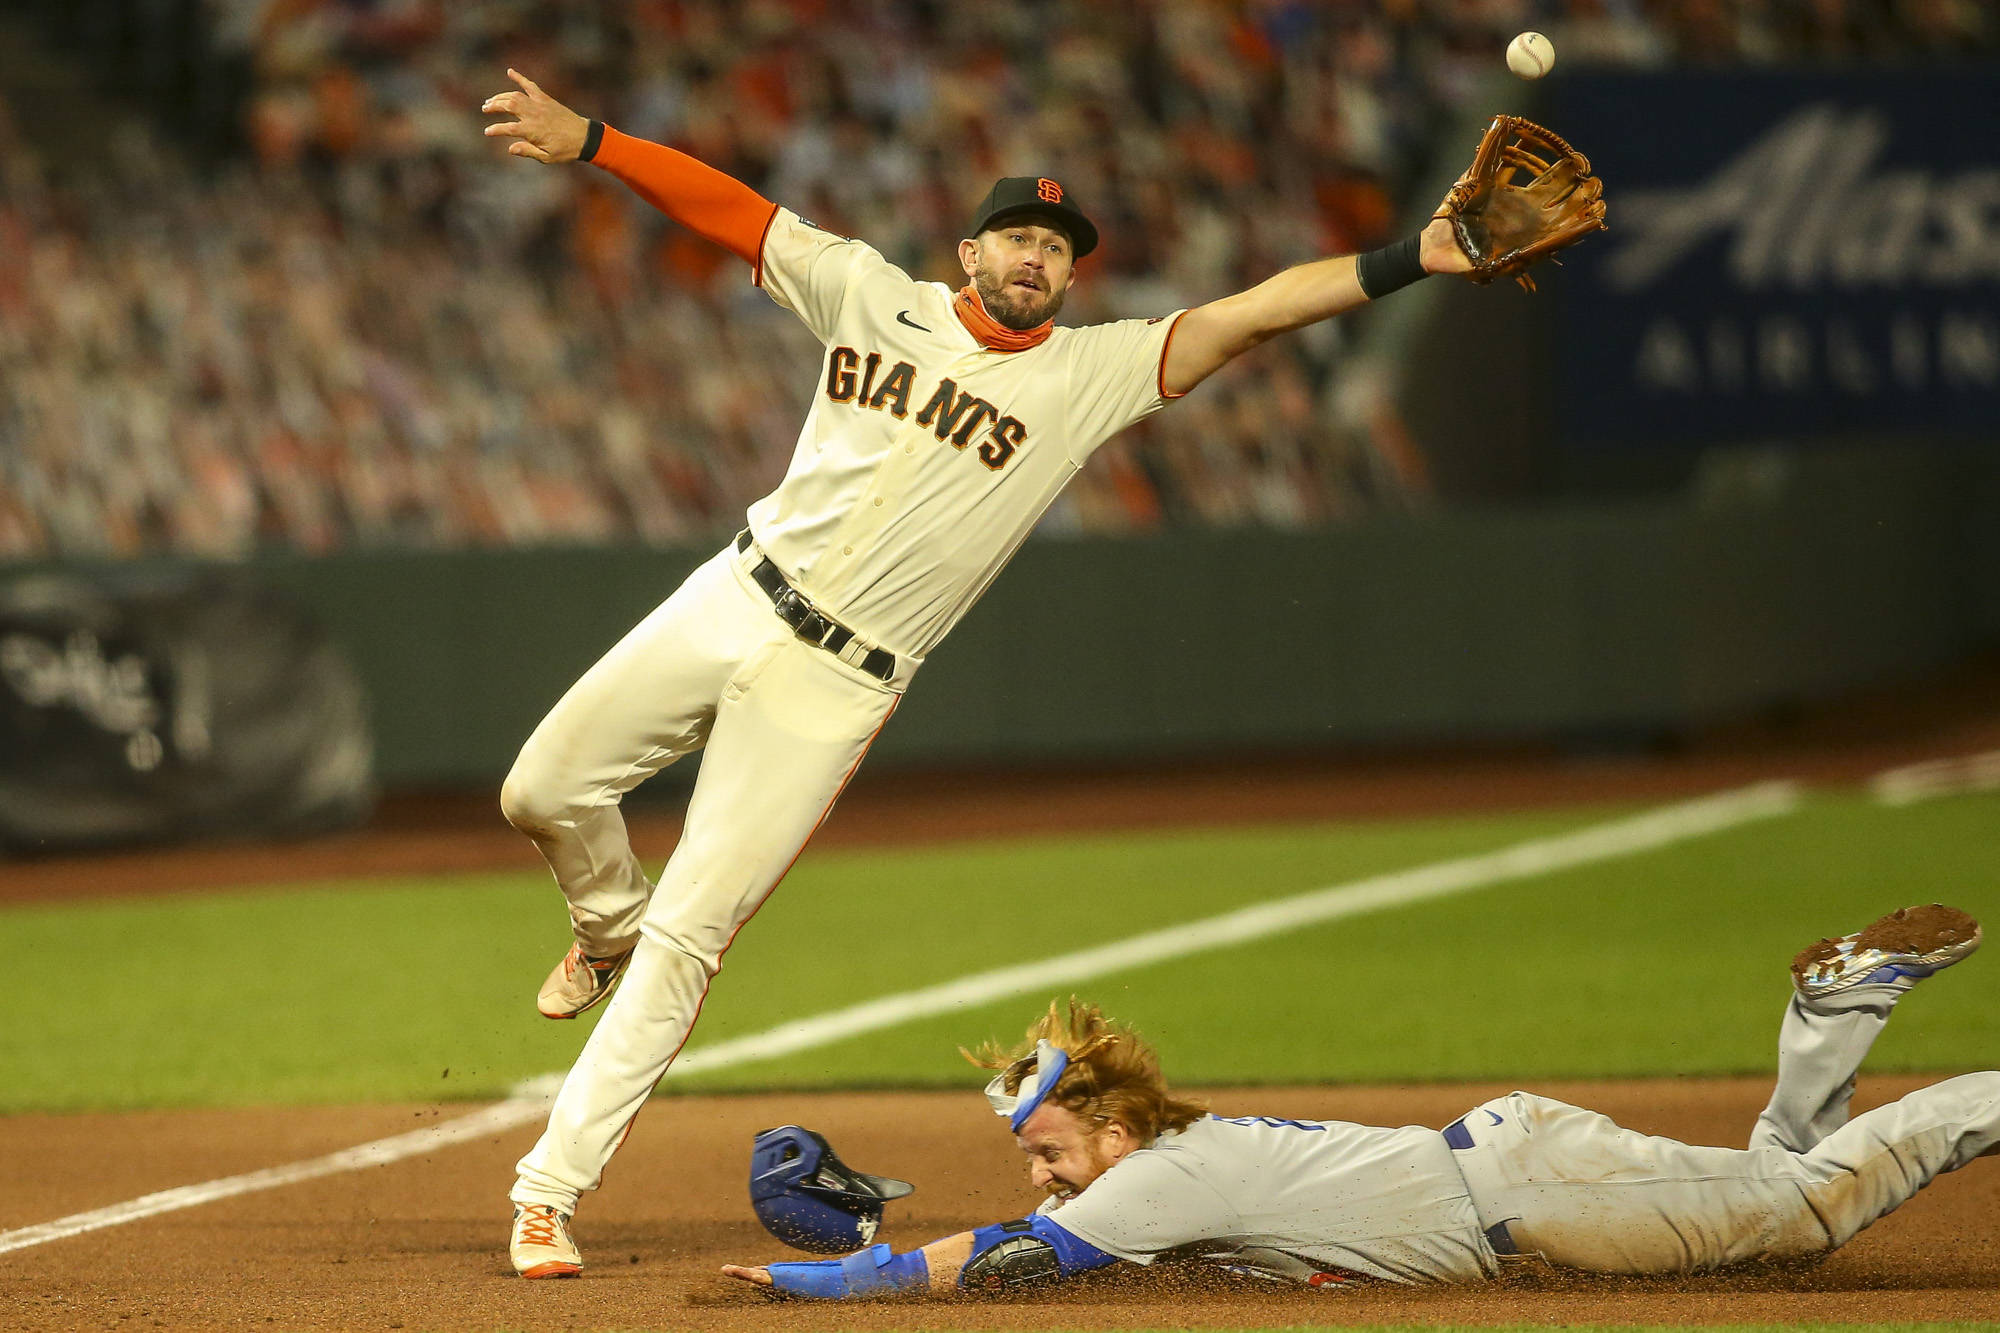 San Francisco Giants third baseman Evan Longoria (10) stretches to make a play at third base on a passed ball. (Chris Victorio | Special to S.F. Examiner).